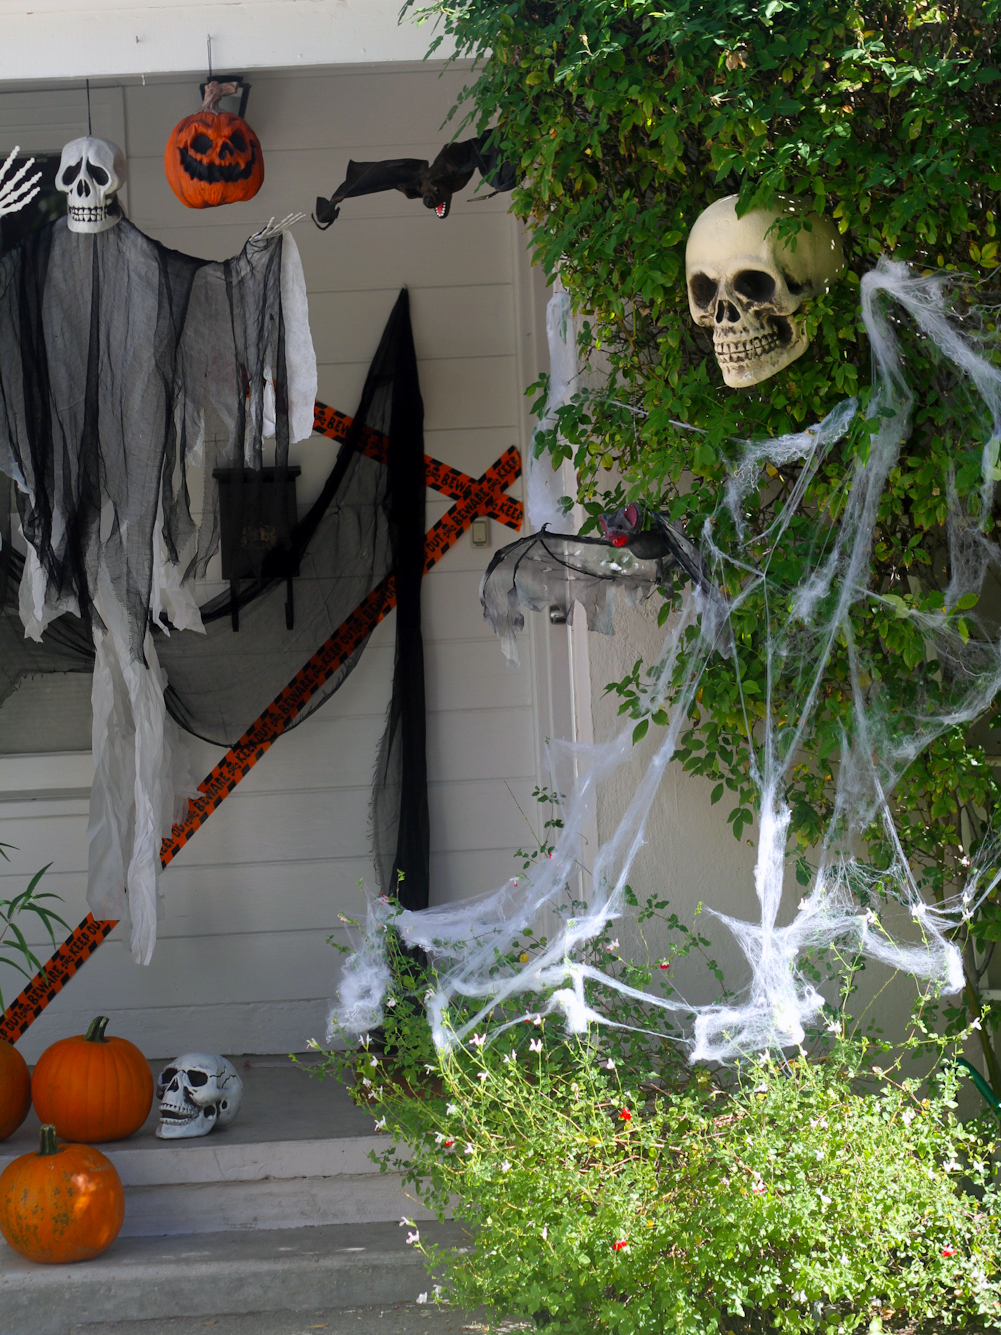 the easiest scariest halloween decorations - Really Scary Halloween Decorations